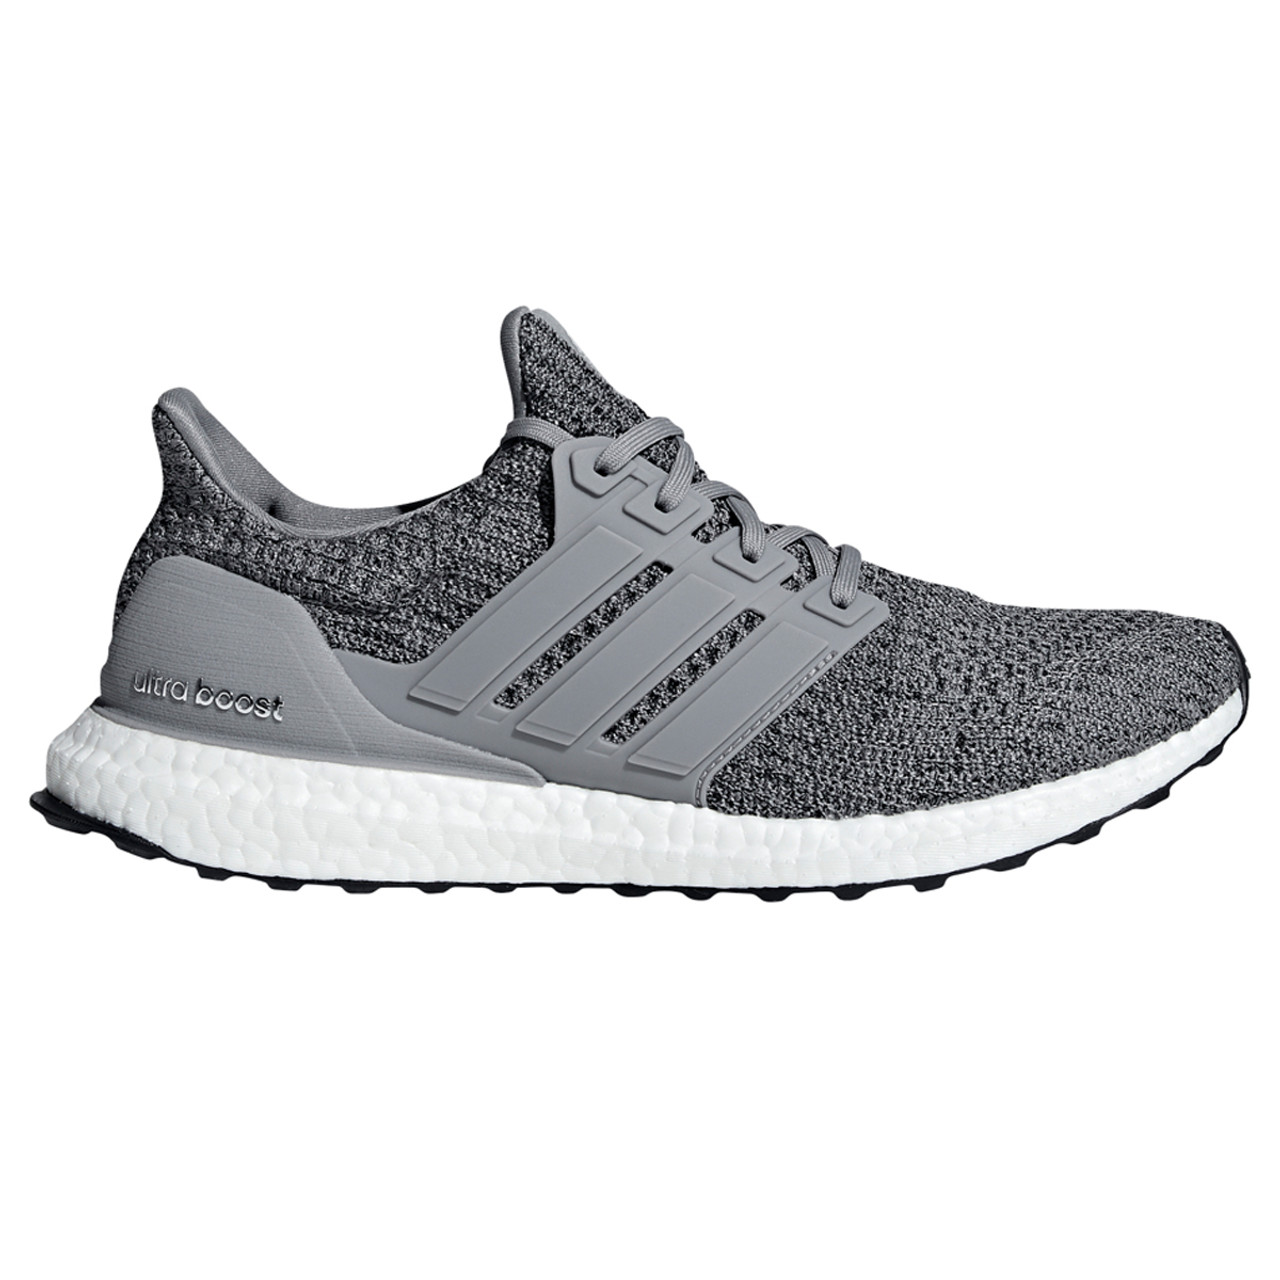 23a44a6ad Adidas UltraBoost Men's Sneakers F36156 - Gray, White, Black ...